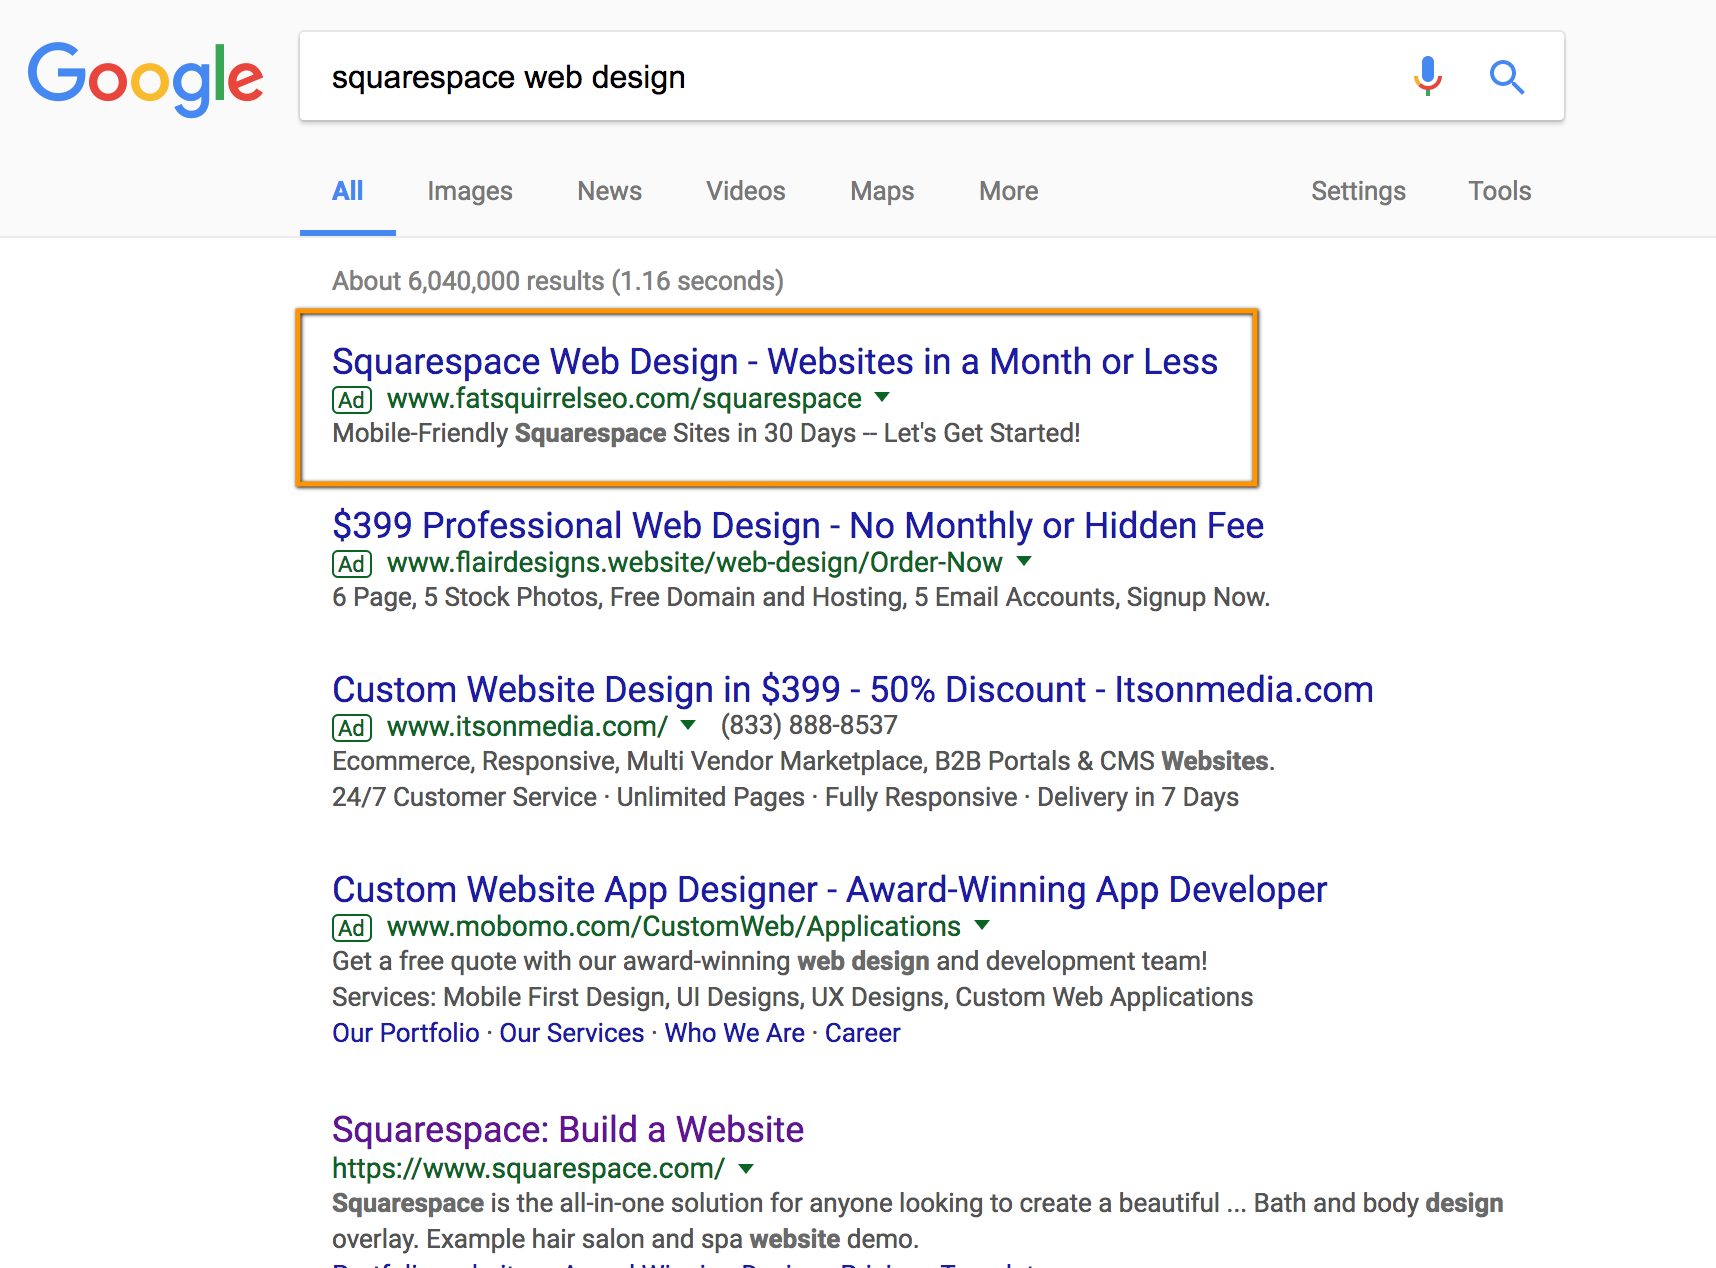 With squarespace.com occupying the #1 organic result on Google, i run Paid search ads for related queries to help generate leads.